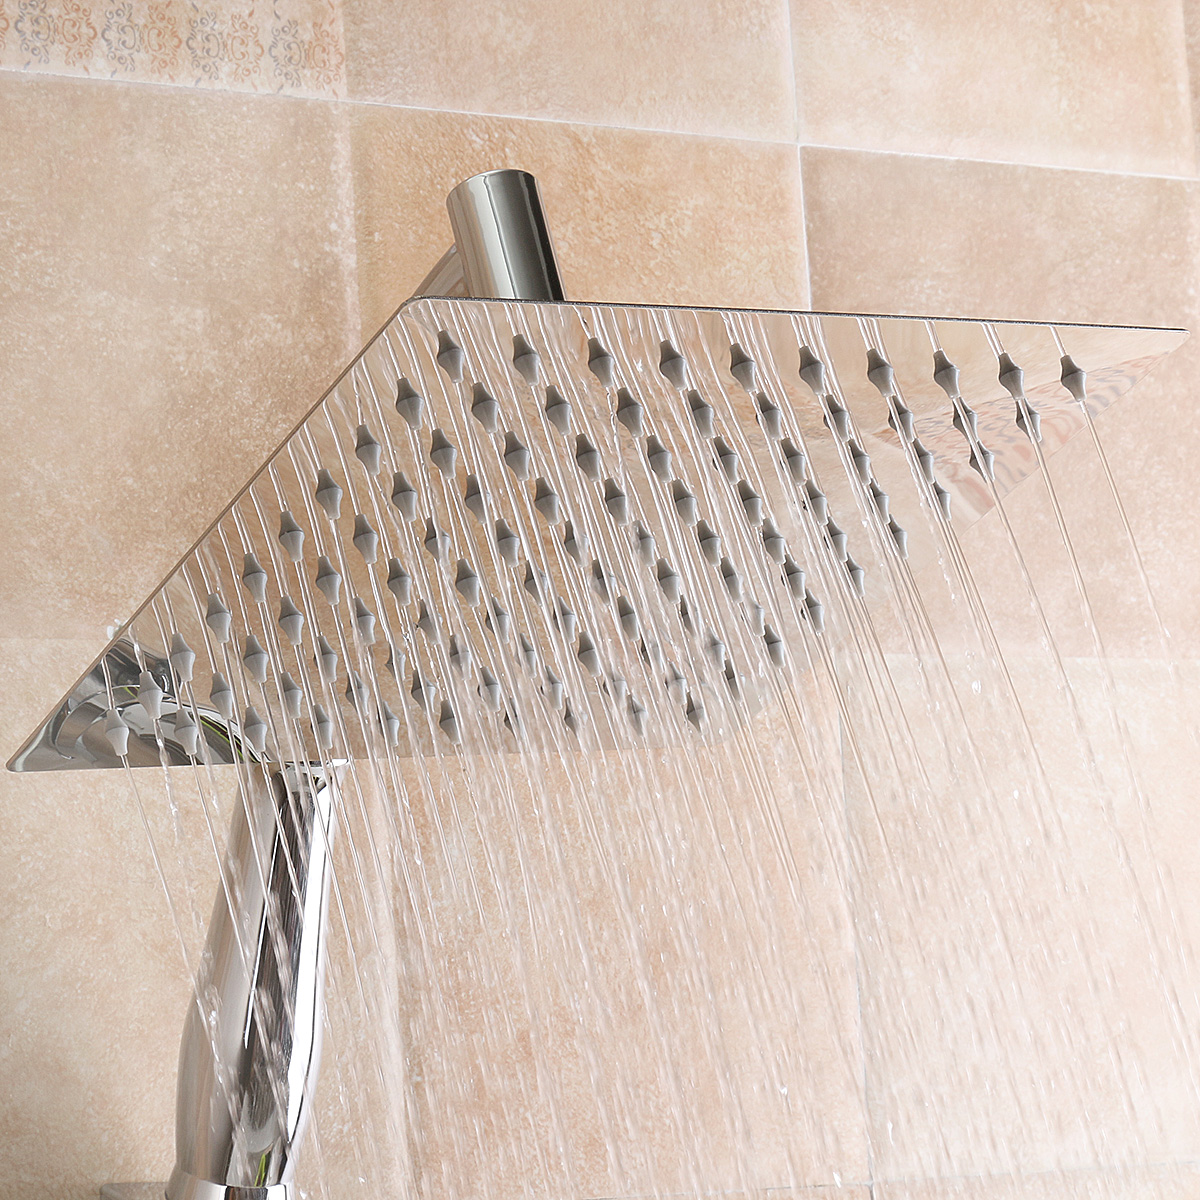 Square 8 Inch Rainfall Shower Head Extension With Shower Arm Hose Kit